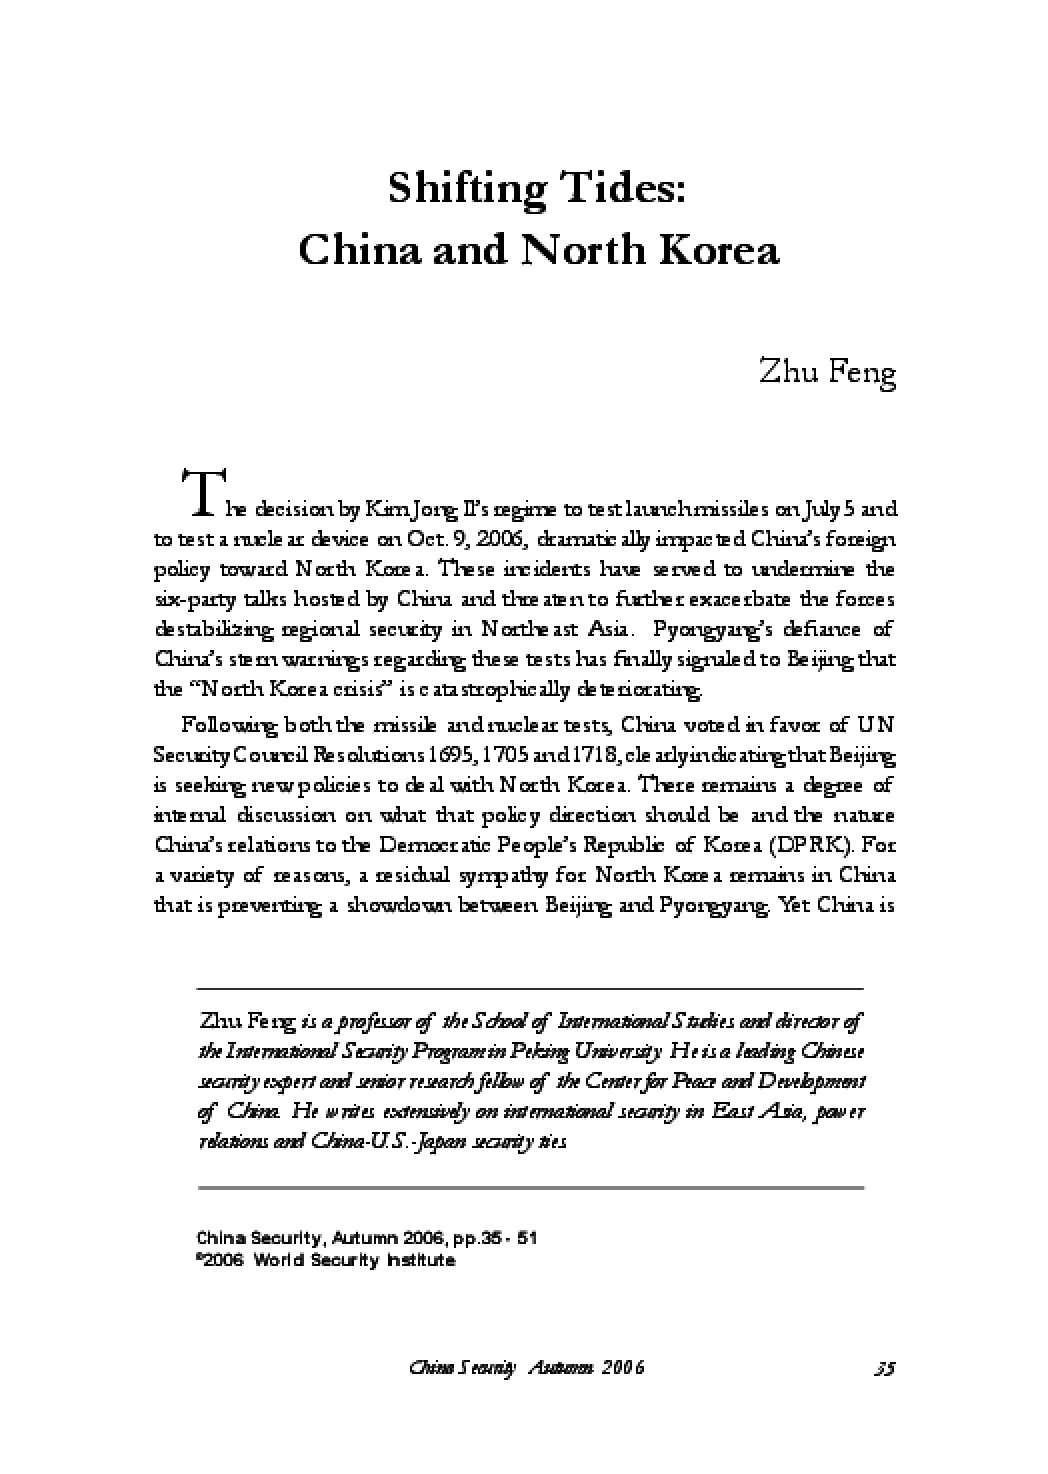 Shifting Tides: China and North Korea